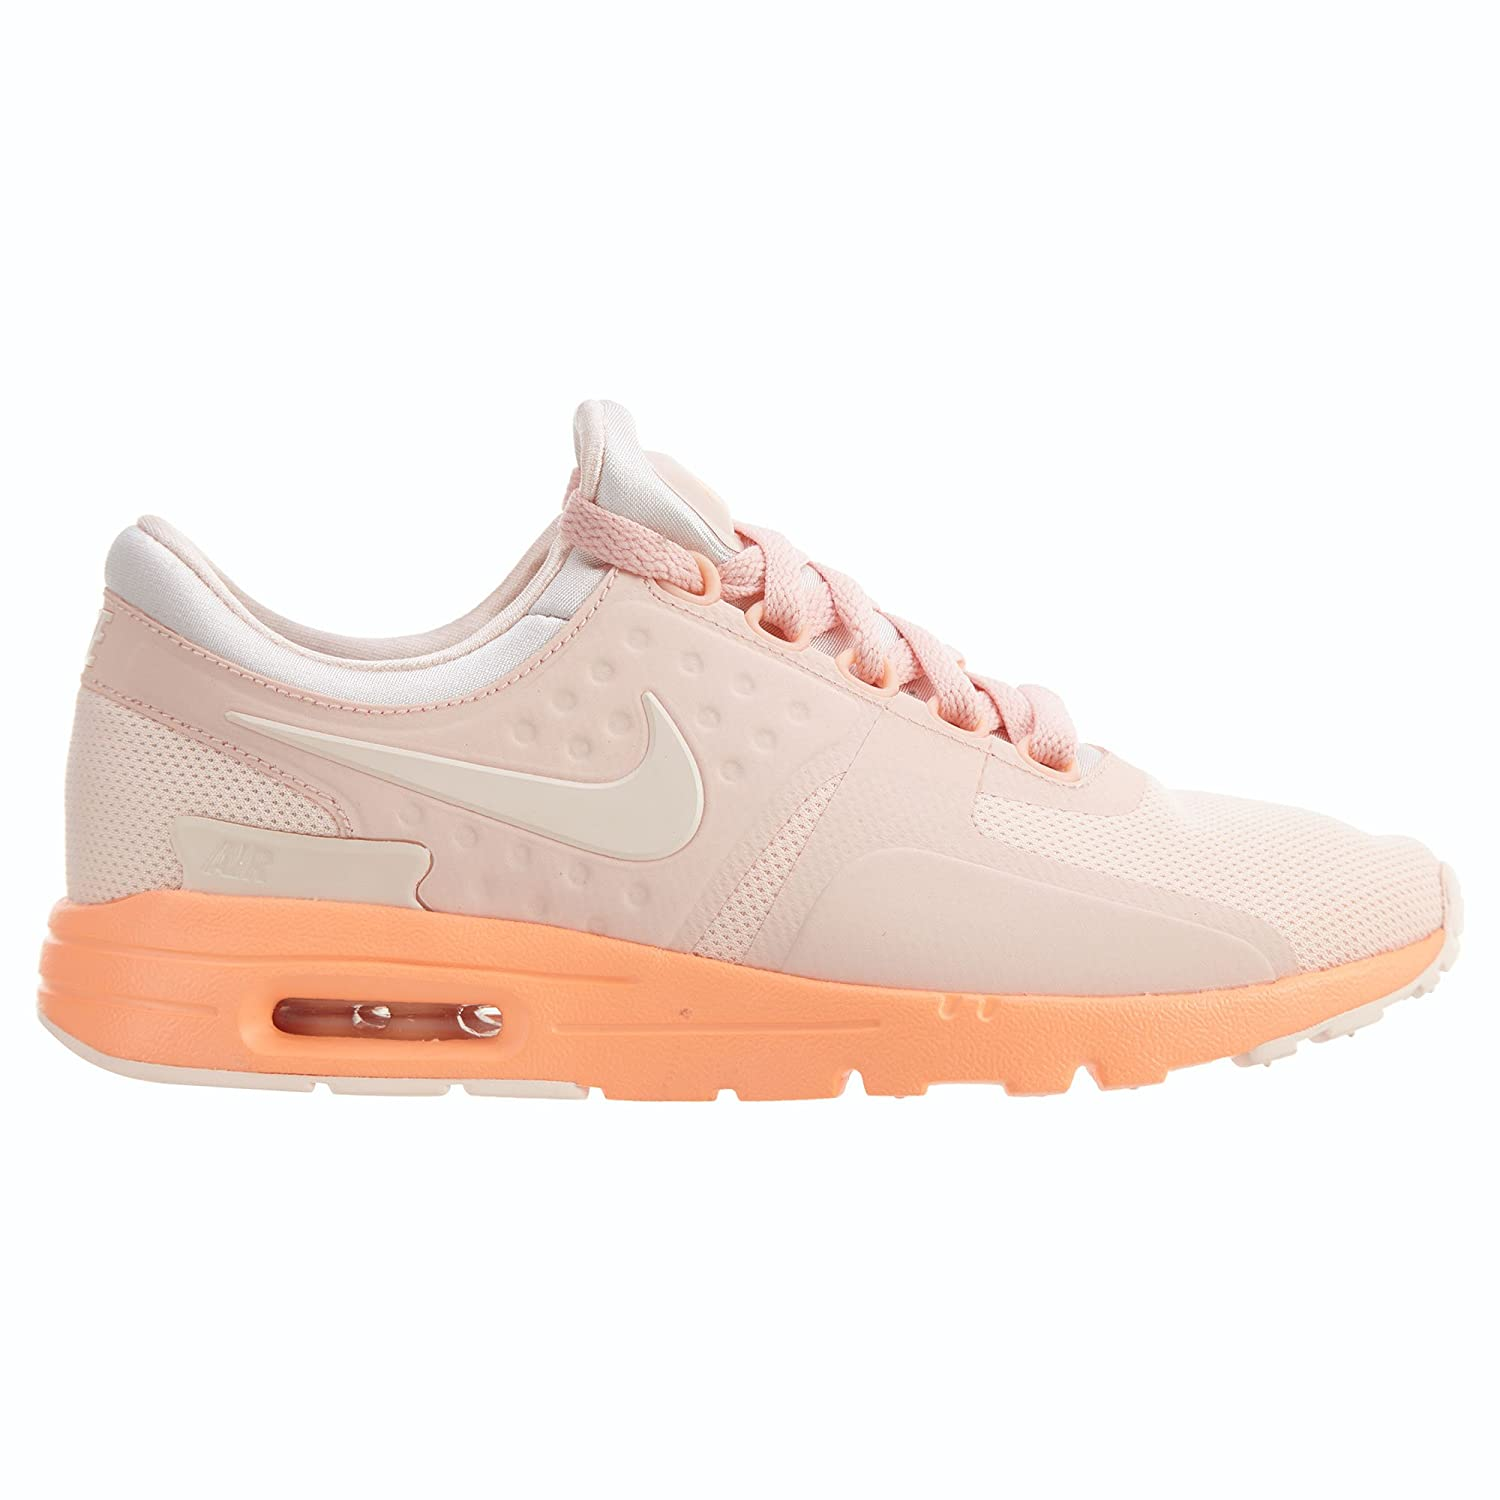 Nike AIR Max Zero Women's Shoe (7): Buy Online at Low Prices in India -  Amazon.in